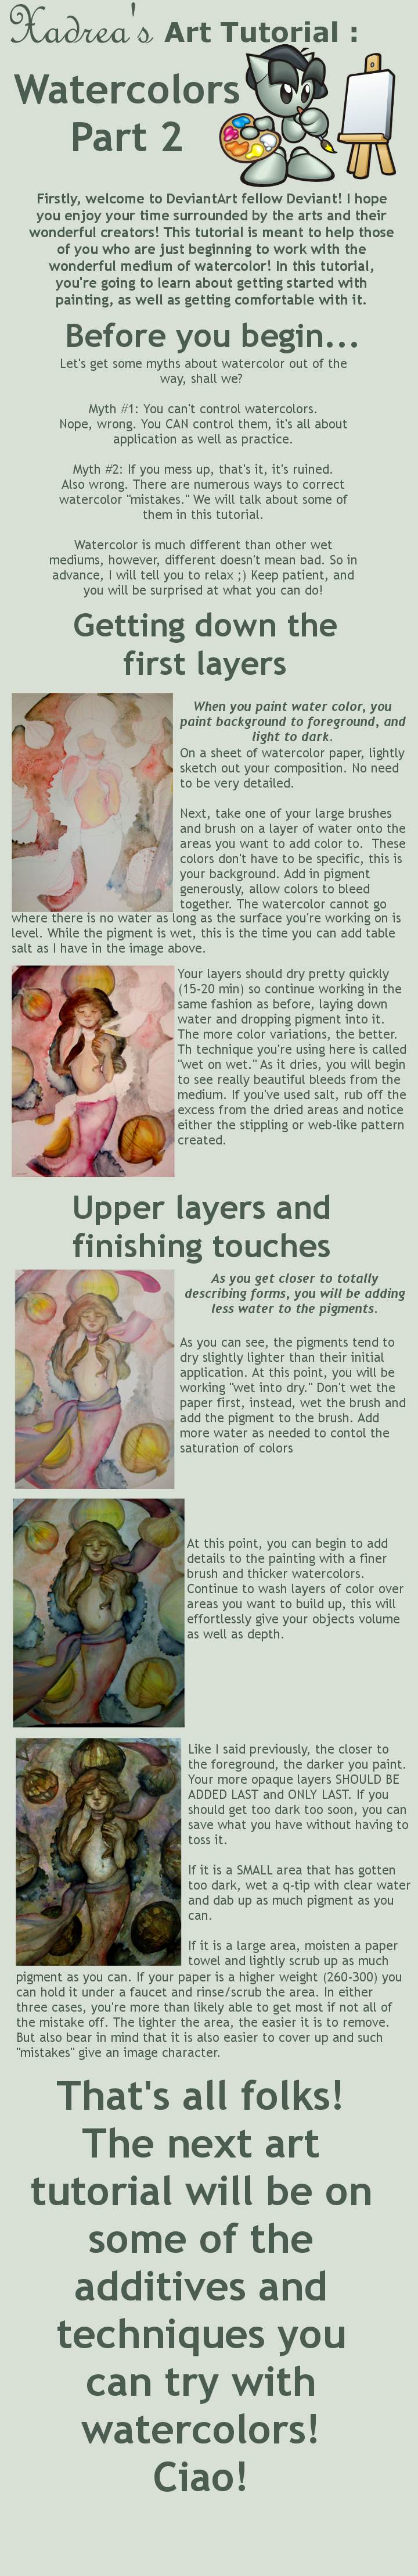 Art Tutorial: Watercolors Prt2 by Xadrea